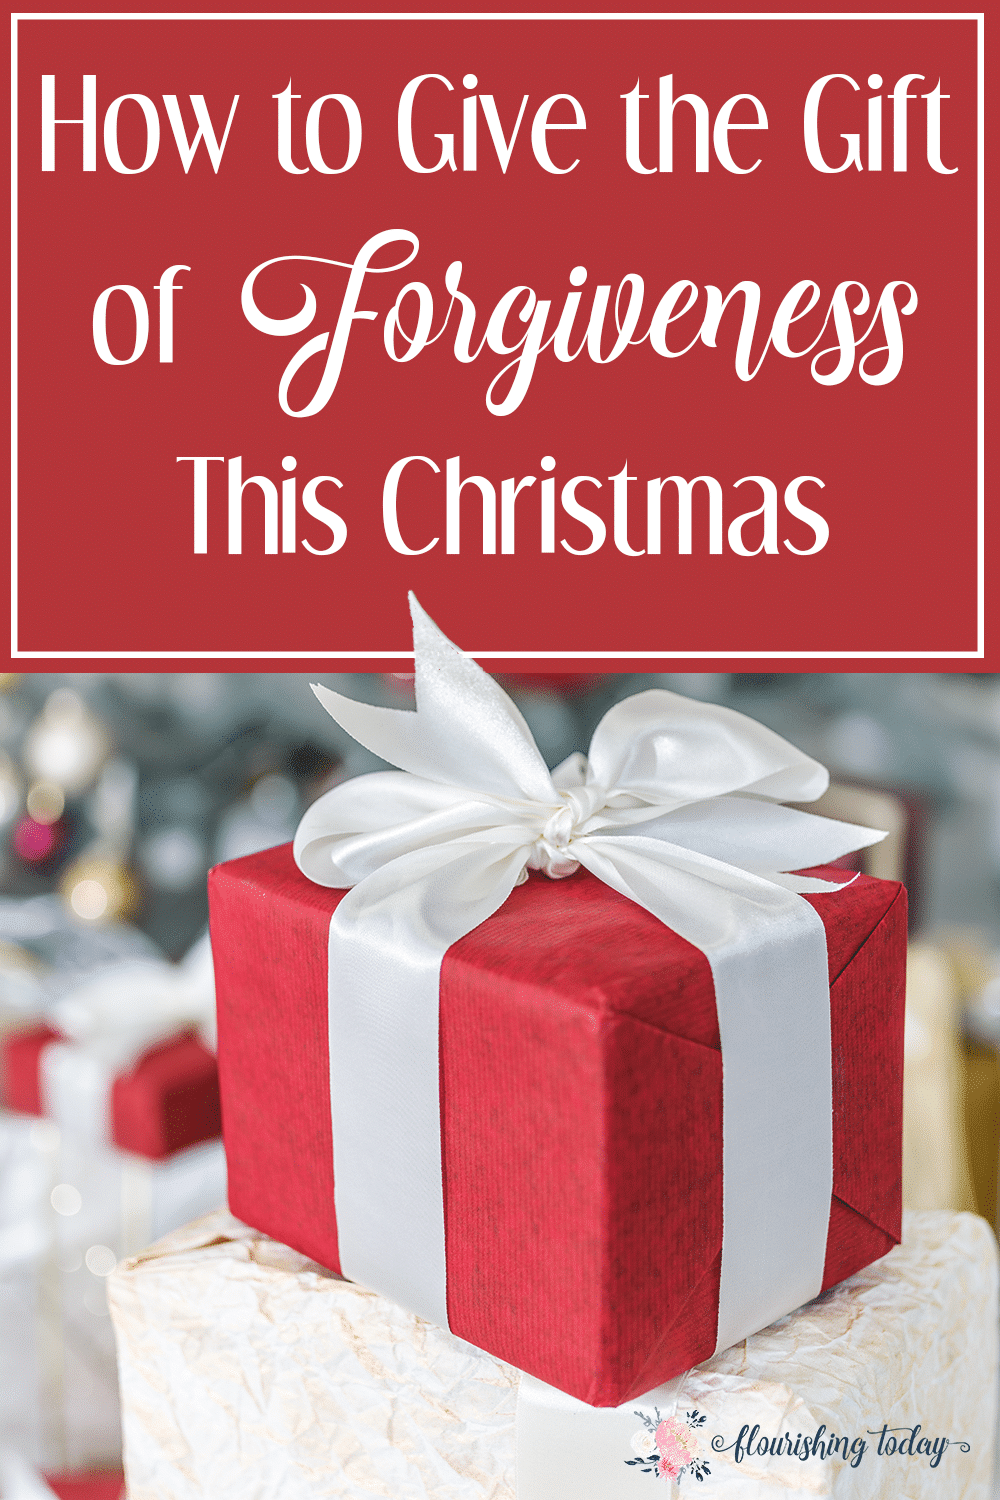 Struggling to forgive someone? Deep hurts can fester around the holidays. Giving the gift of forgiveness this Christmas can be the best gift, even for you!